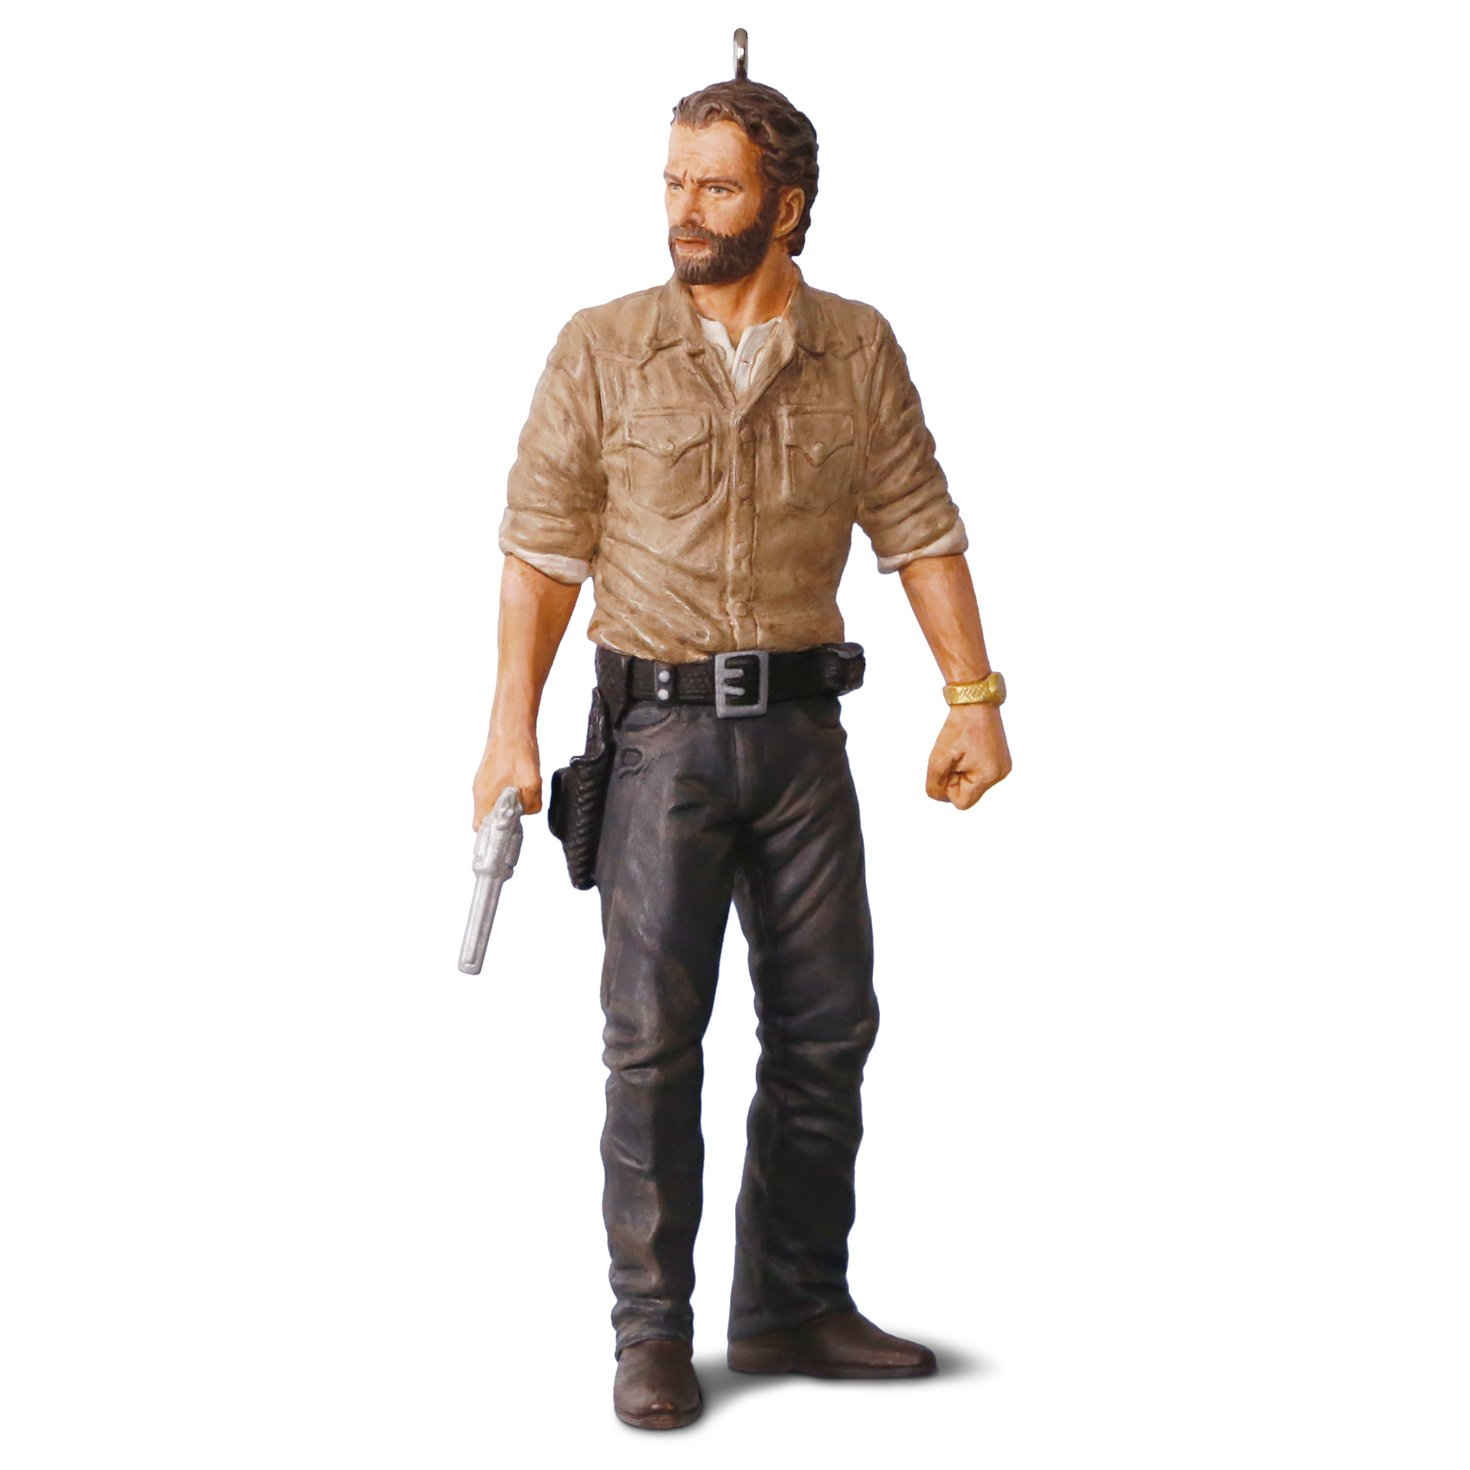 The Walking Dead Christmas Ornament Rick Grimes Hallmark